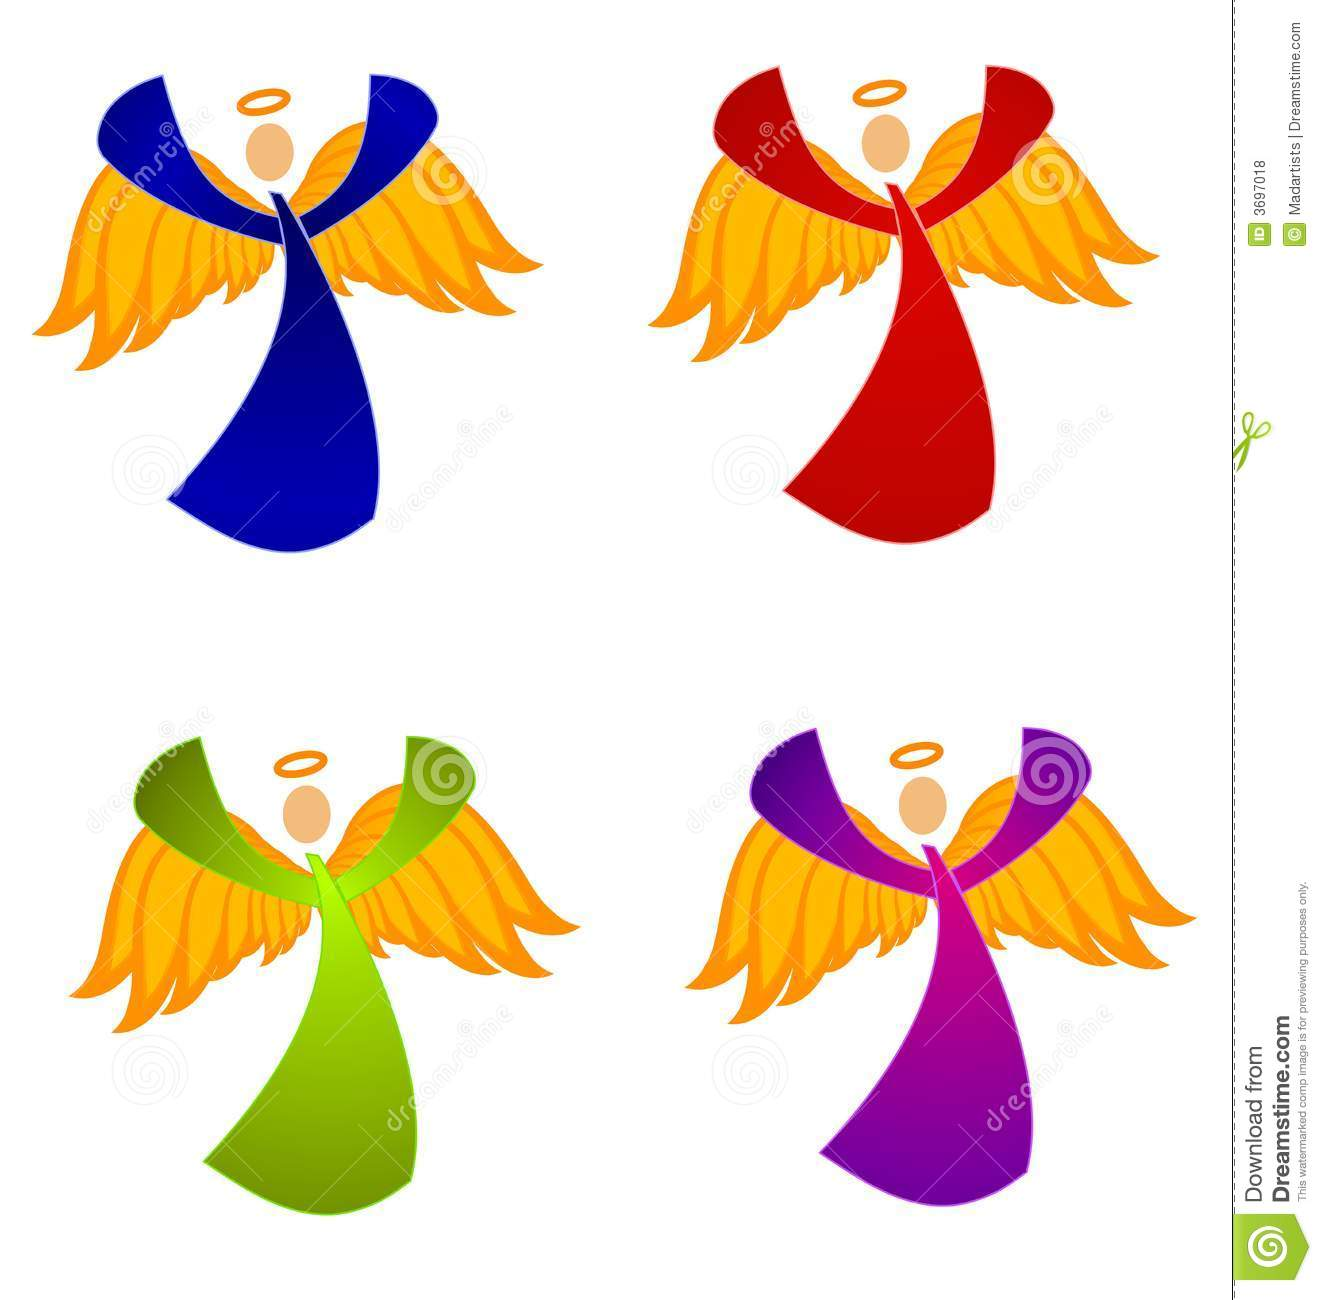 variety of christmas angels clip art stock illustration rh dreamstime com angels clipart black and white angels clip art free printable